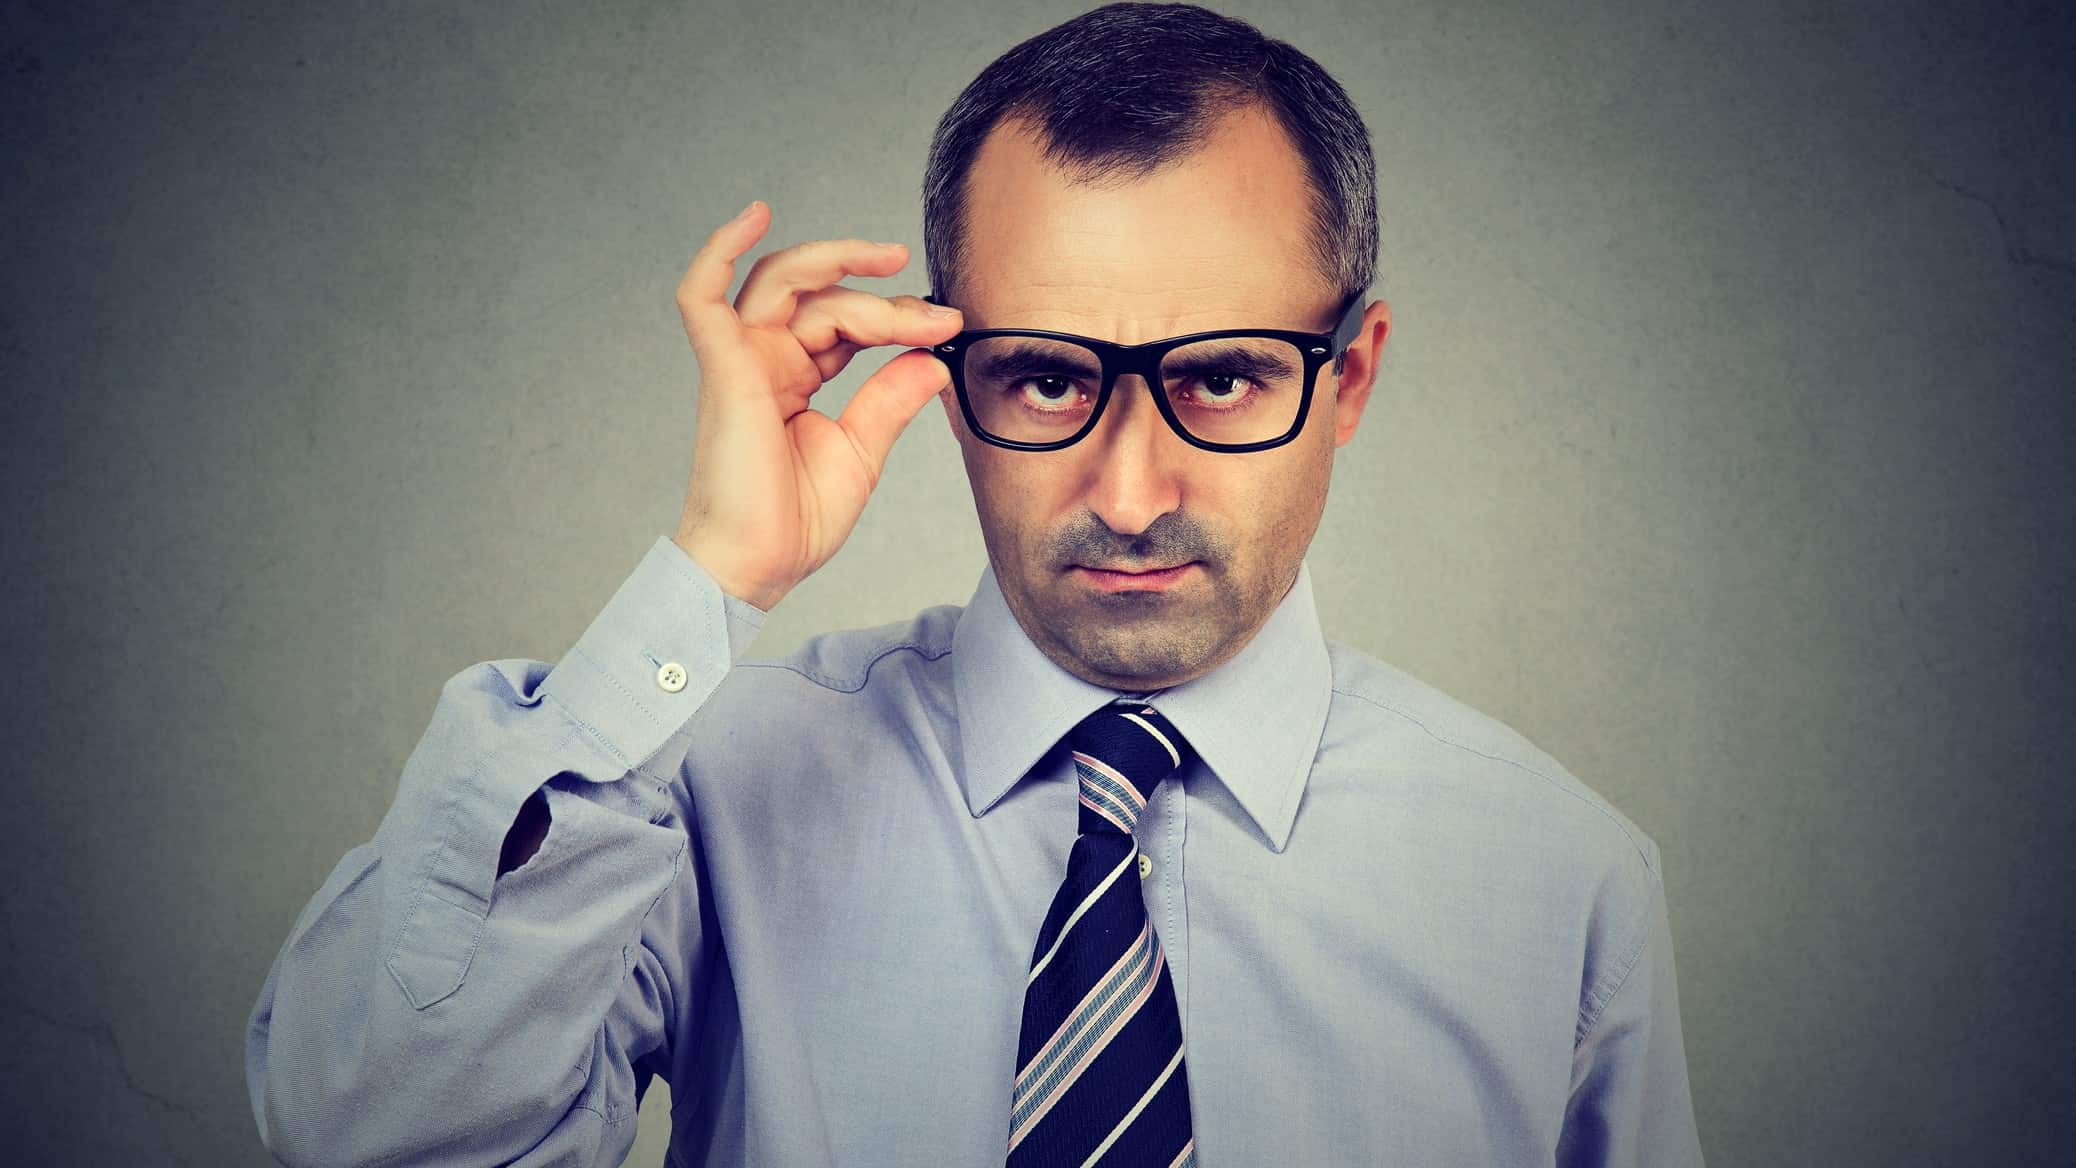 Unimpressed businessman looks down his glasses, indicating an unhappy and critical investor